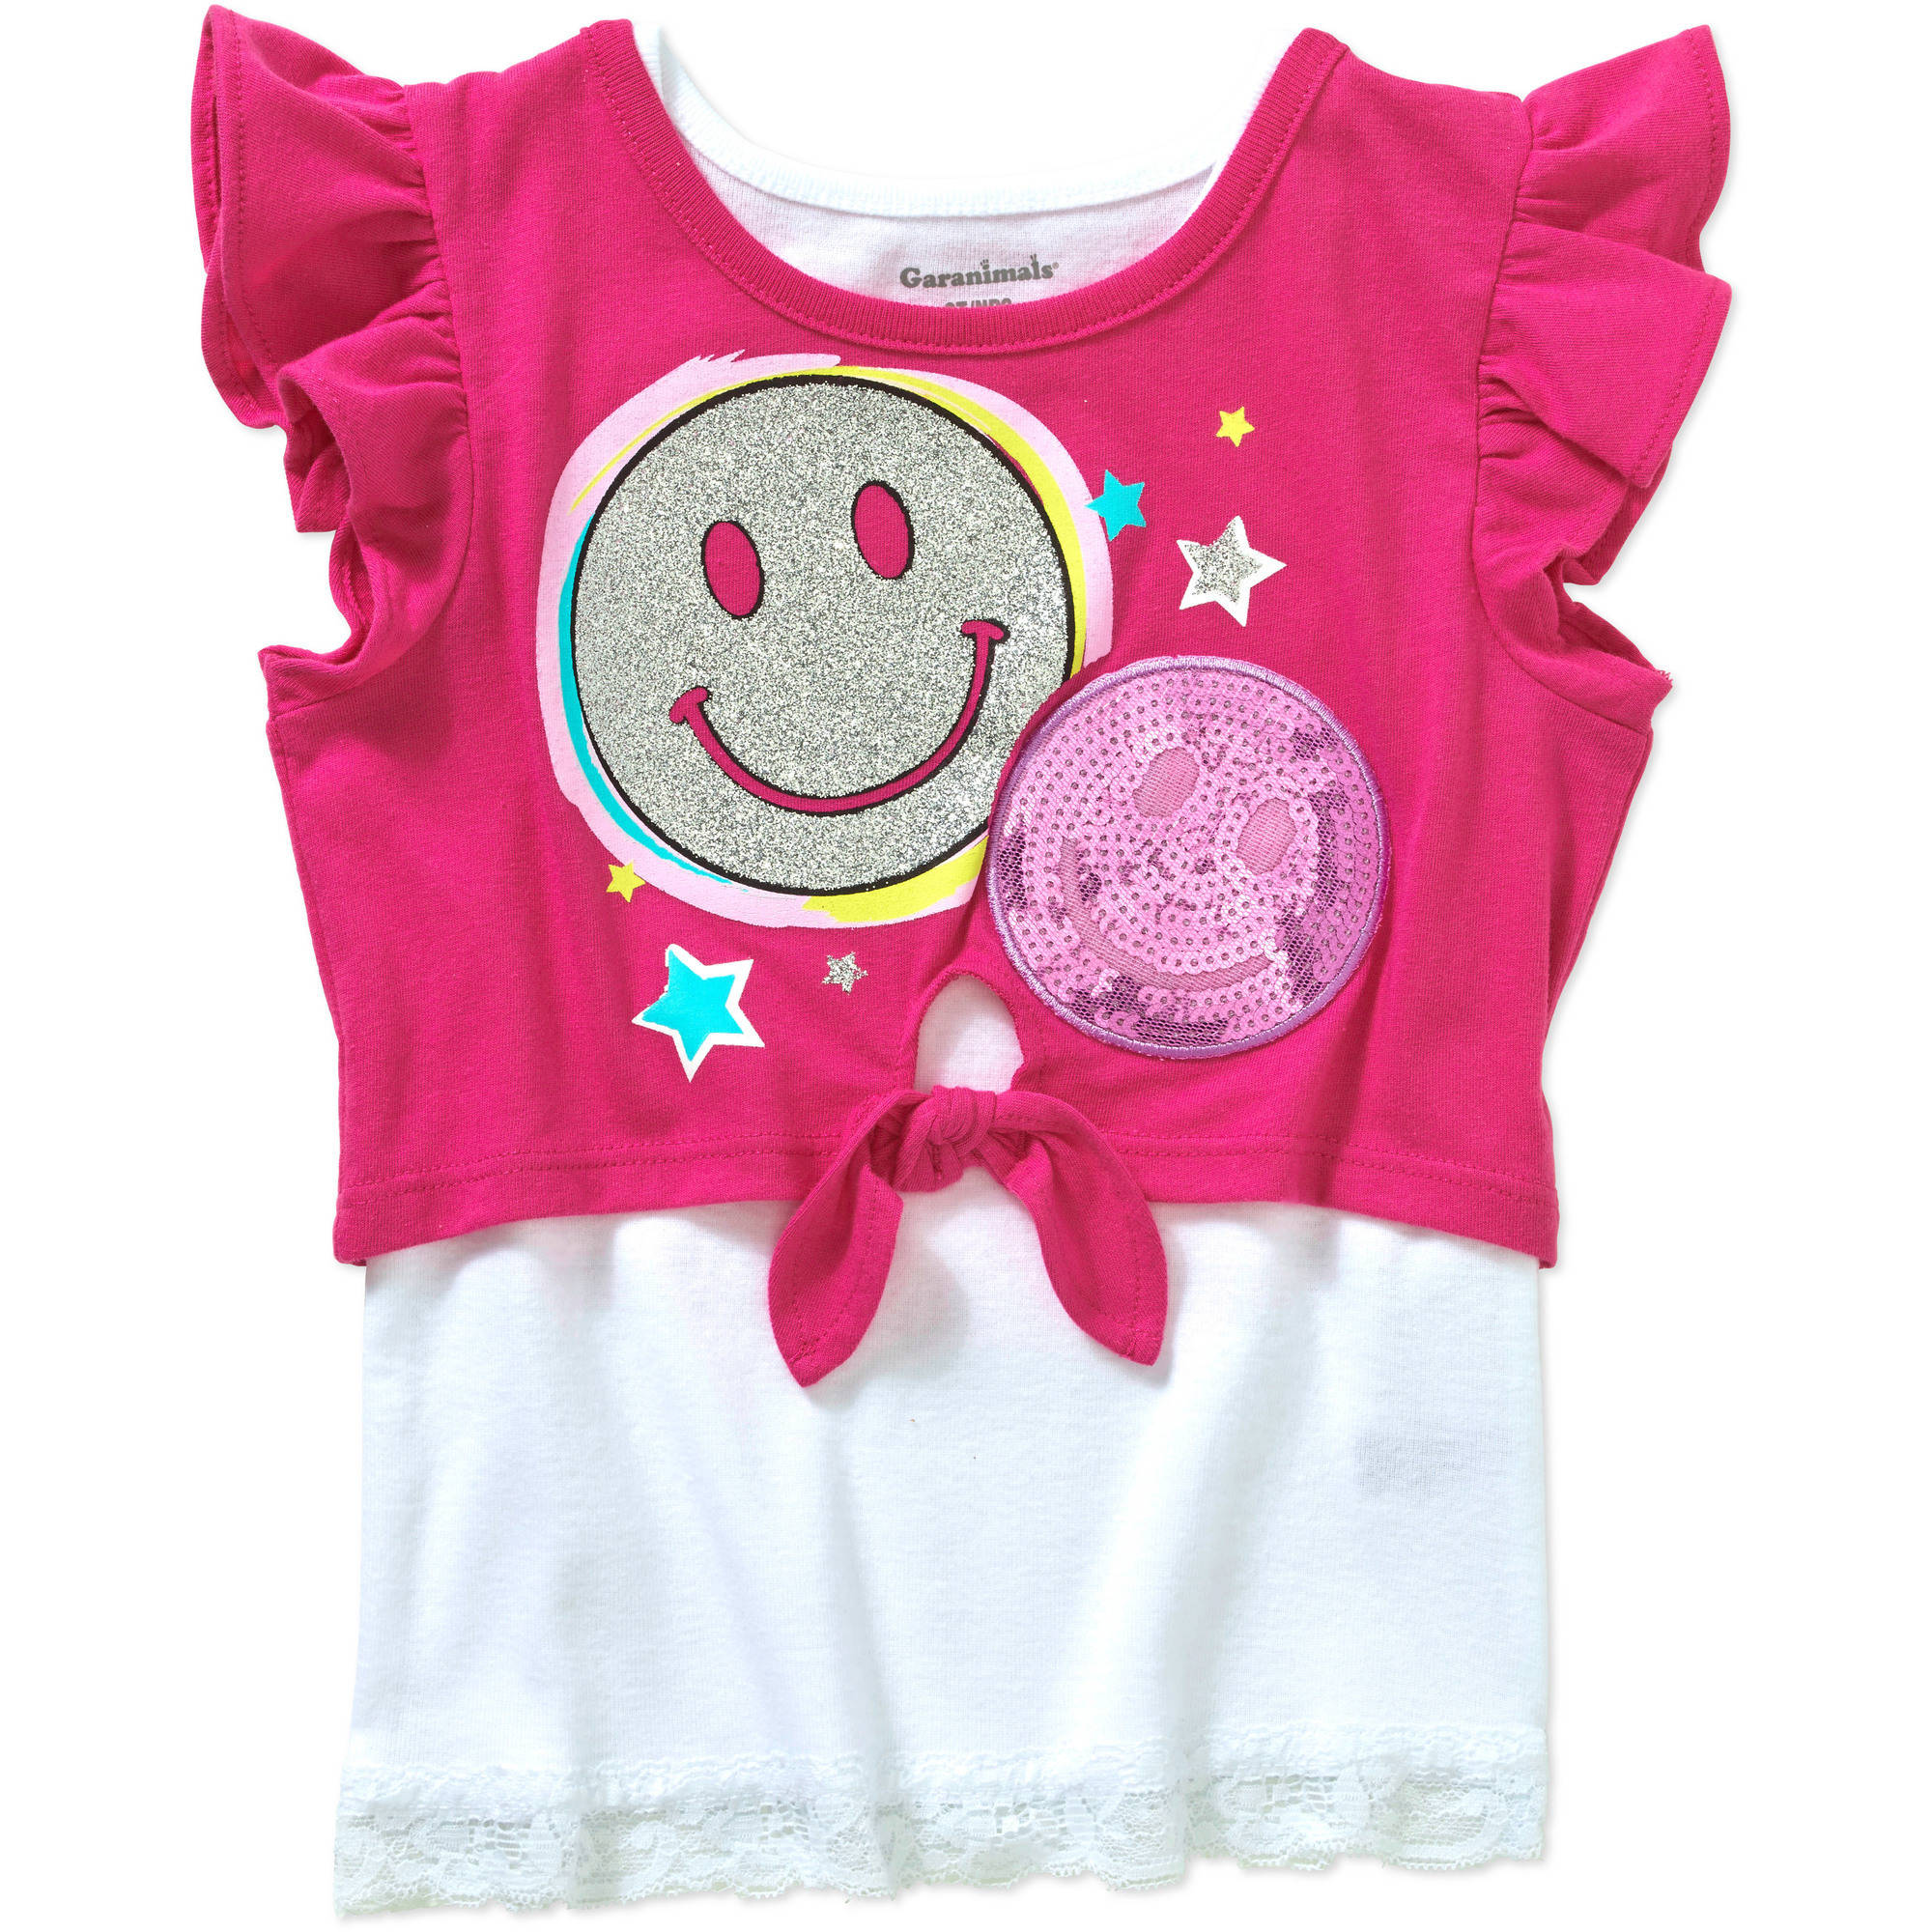 Garanimals Baby Toddler Girl Short Sleeve Graphic Crop Top